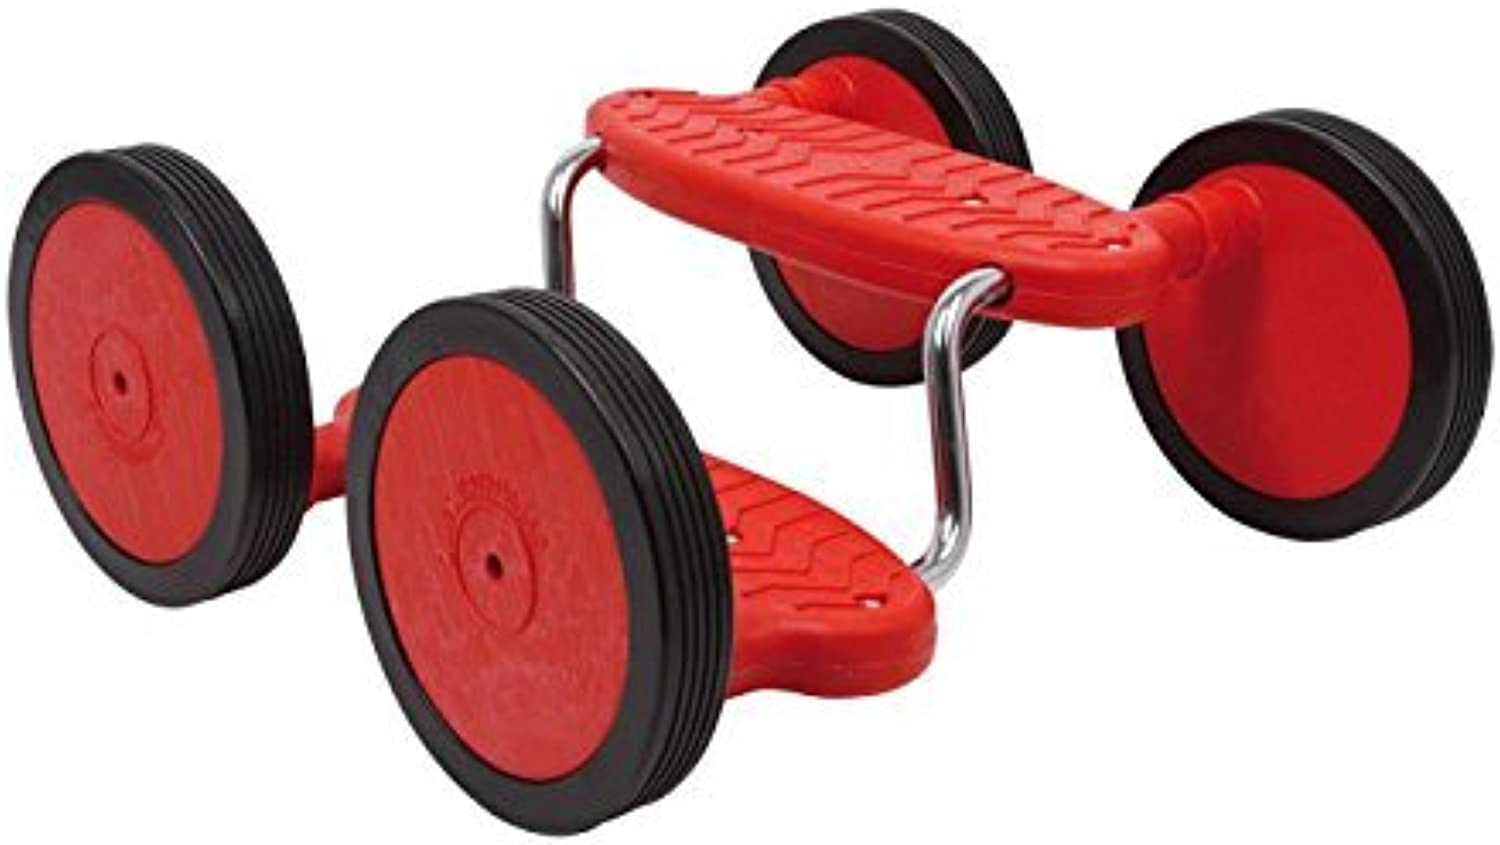 Legler rougeini Calisthenics and Ability Toy by petit Foot